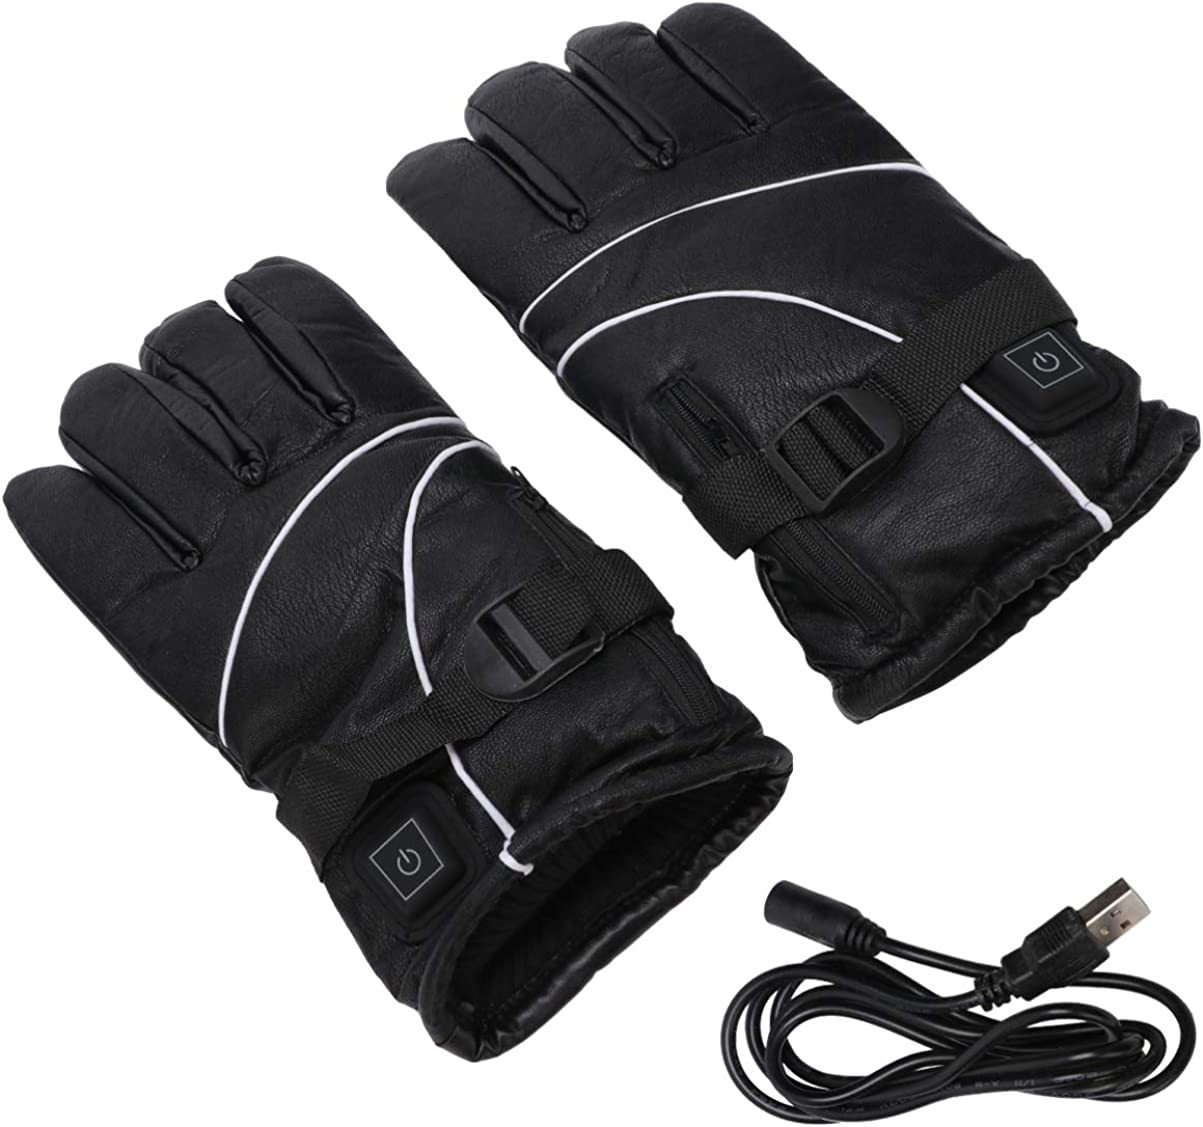 BESPORTBLE Heated Gloves Winter Heating Gloves Electric Arthritis Hand Warmer Warm Electric USB Mittens Outside Sport Warm Gloves for Woman Man Winter Outside Anti Slip Gloves